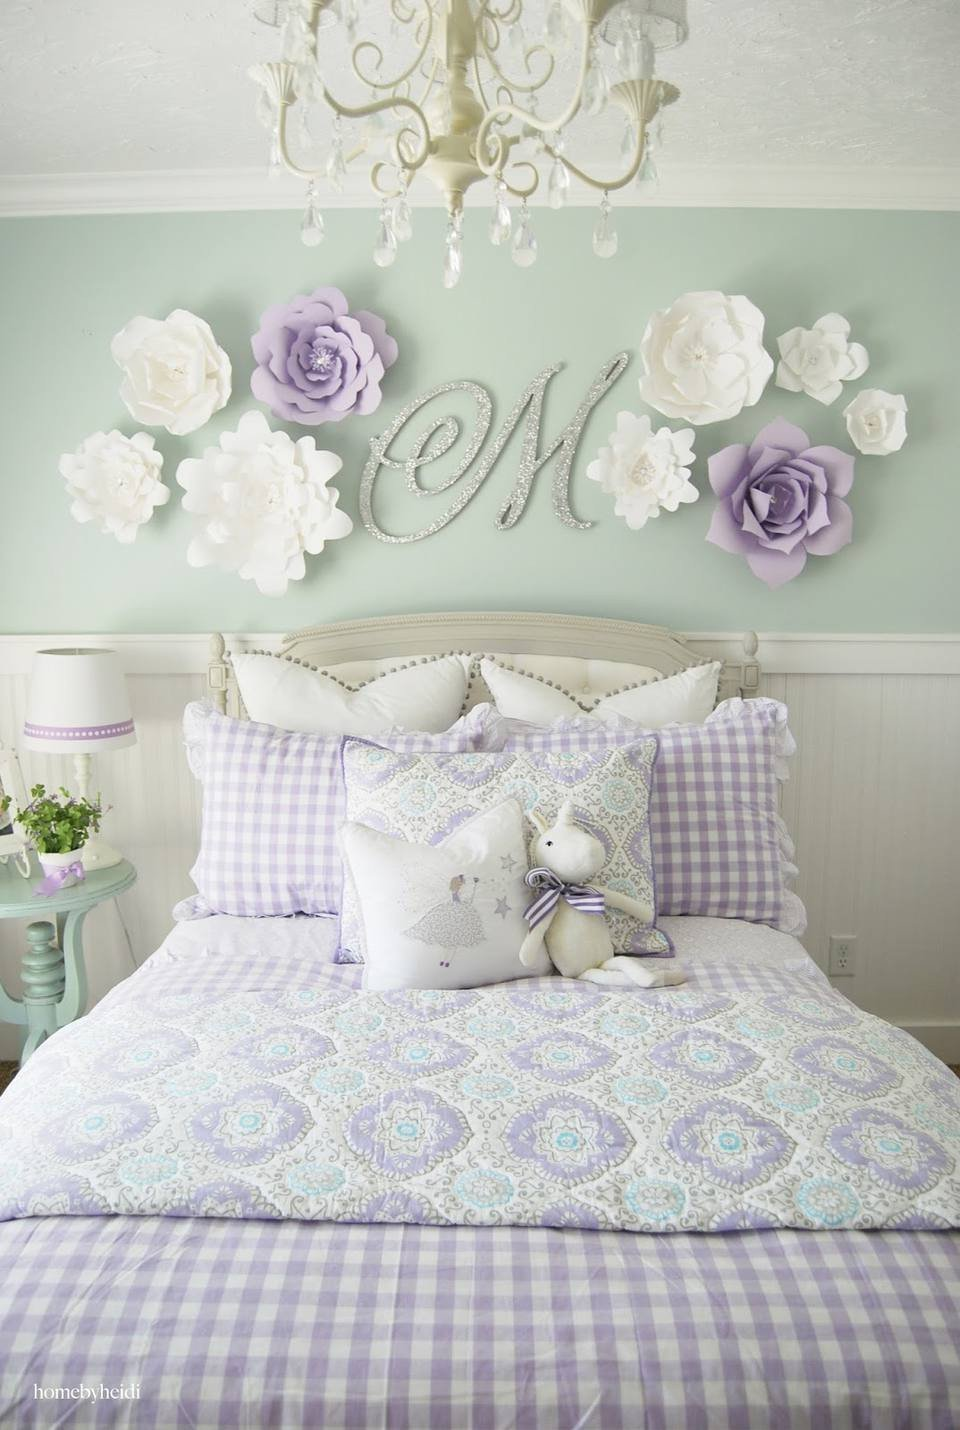 Wall Decoration for Girls Bedroom Elegant 24 Wall Decor Ideas for Girls Rooms